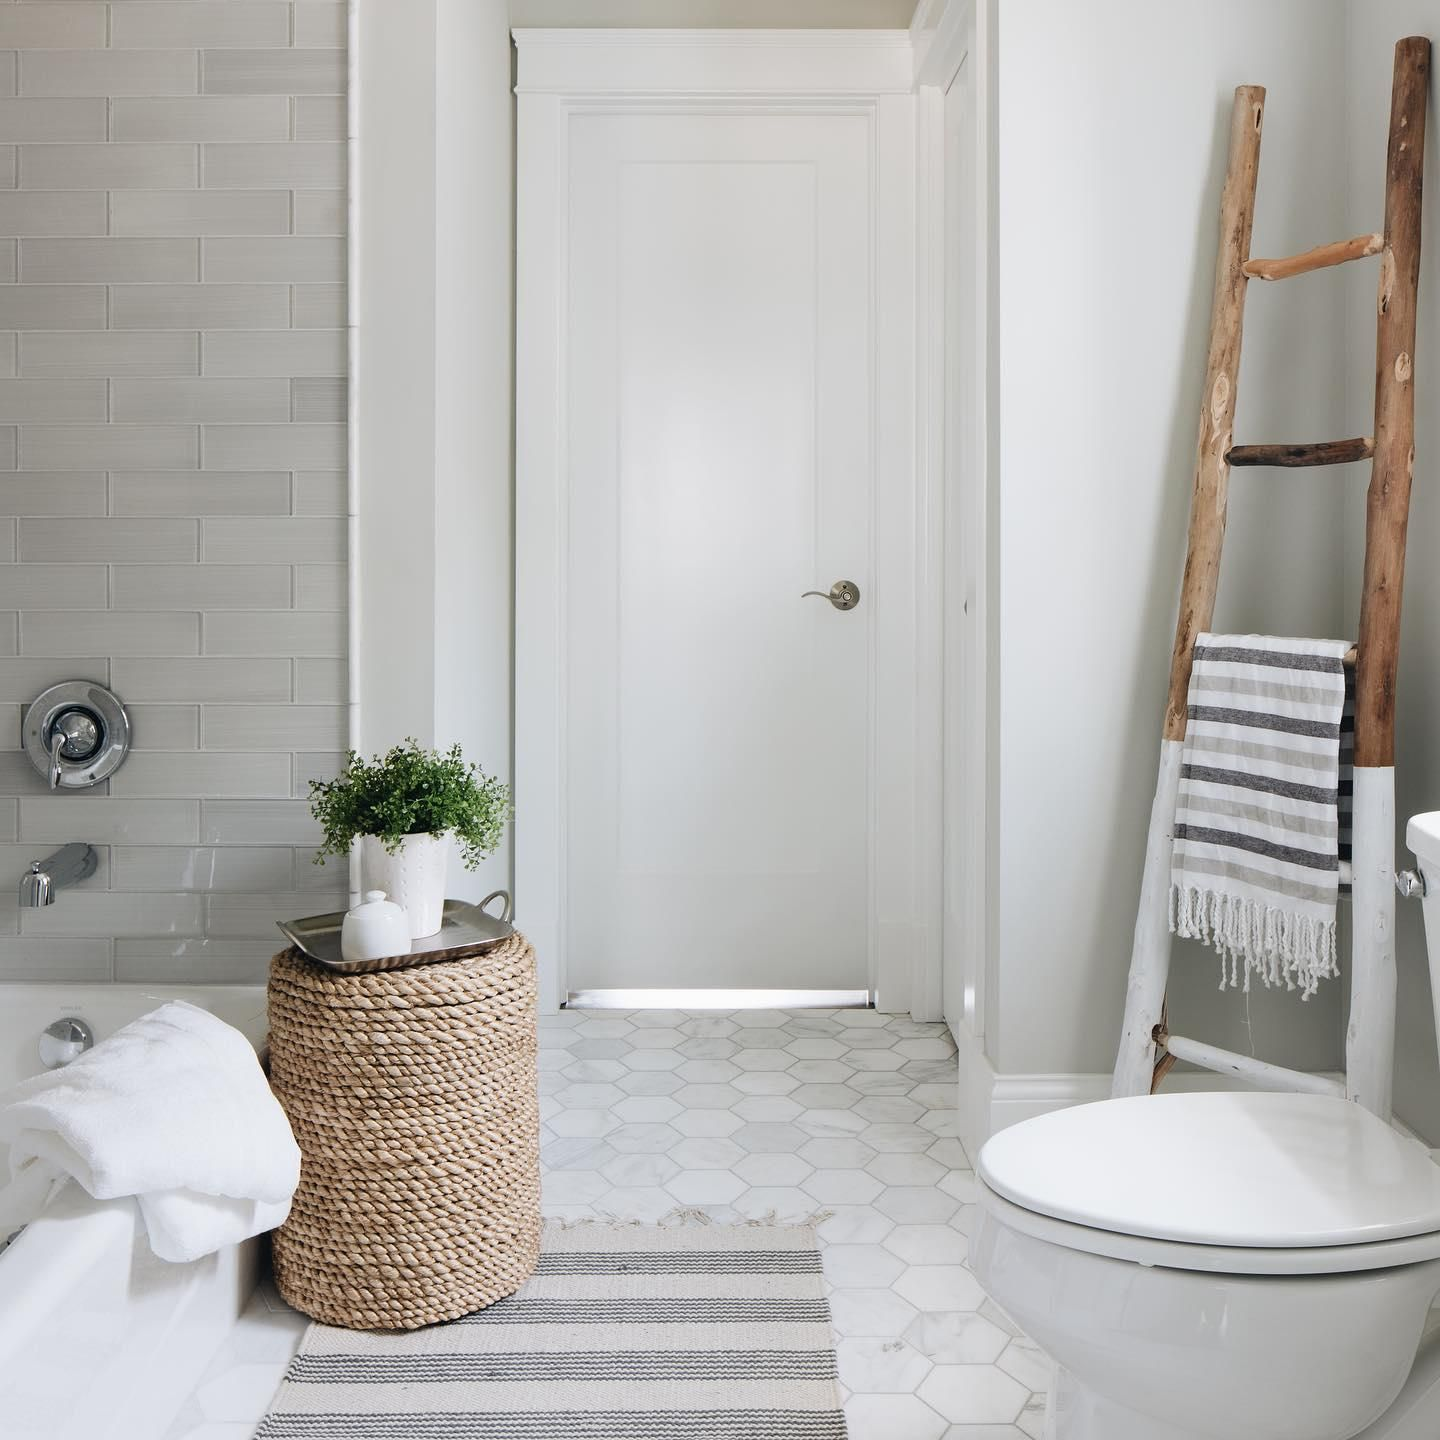 Tried And True Wall And Floor Tile Combinations The Tile Shop Blog The Tile Shop Grey Wall Tiles White Hexagon Tile Bathroom